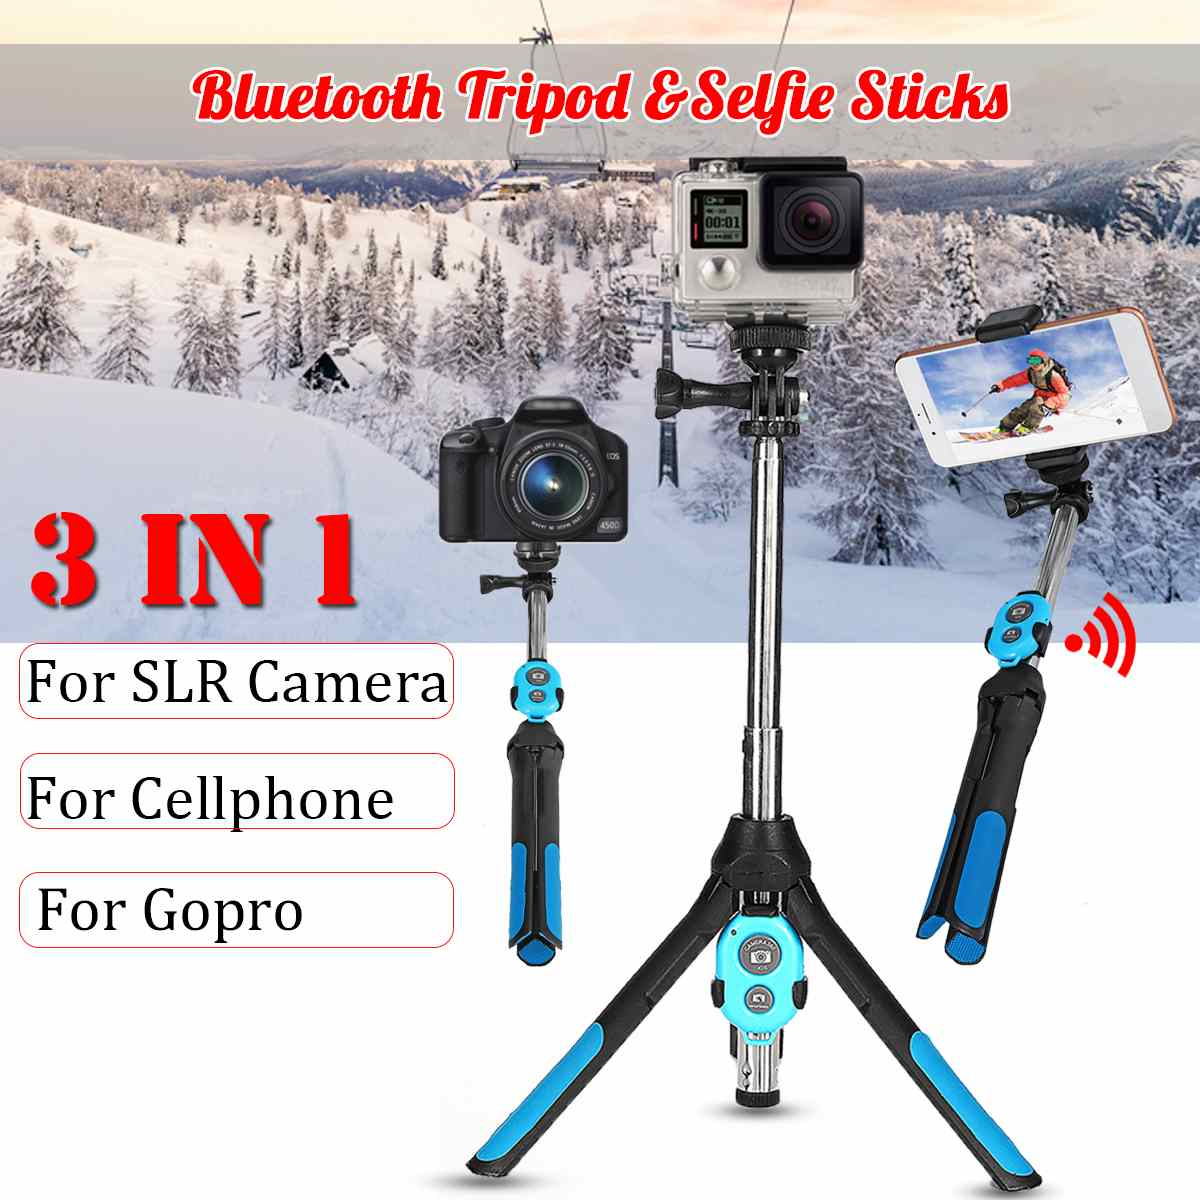 3in1 Foldable Bluetooth Selfie Stick Tripod Stand For Gopro With Remote Controller Extendable Phone Tripod For DVR Sports Camera